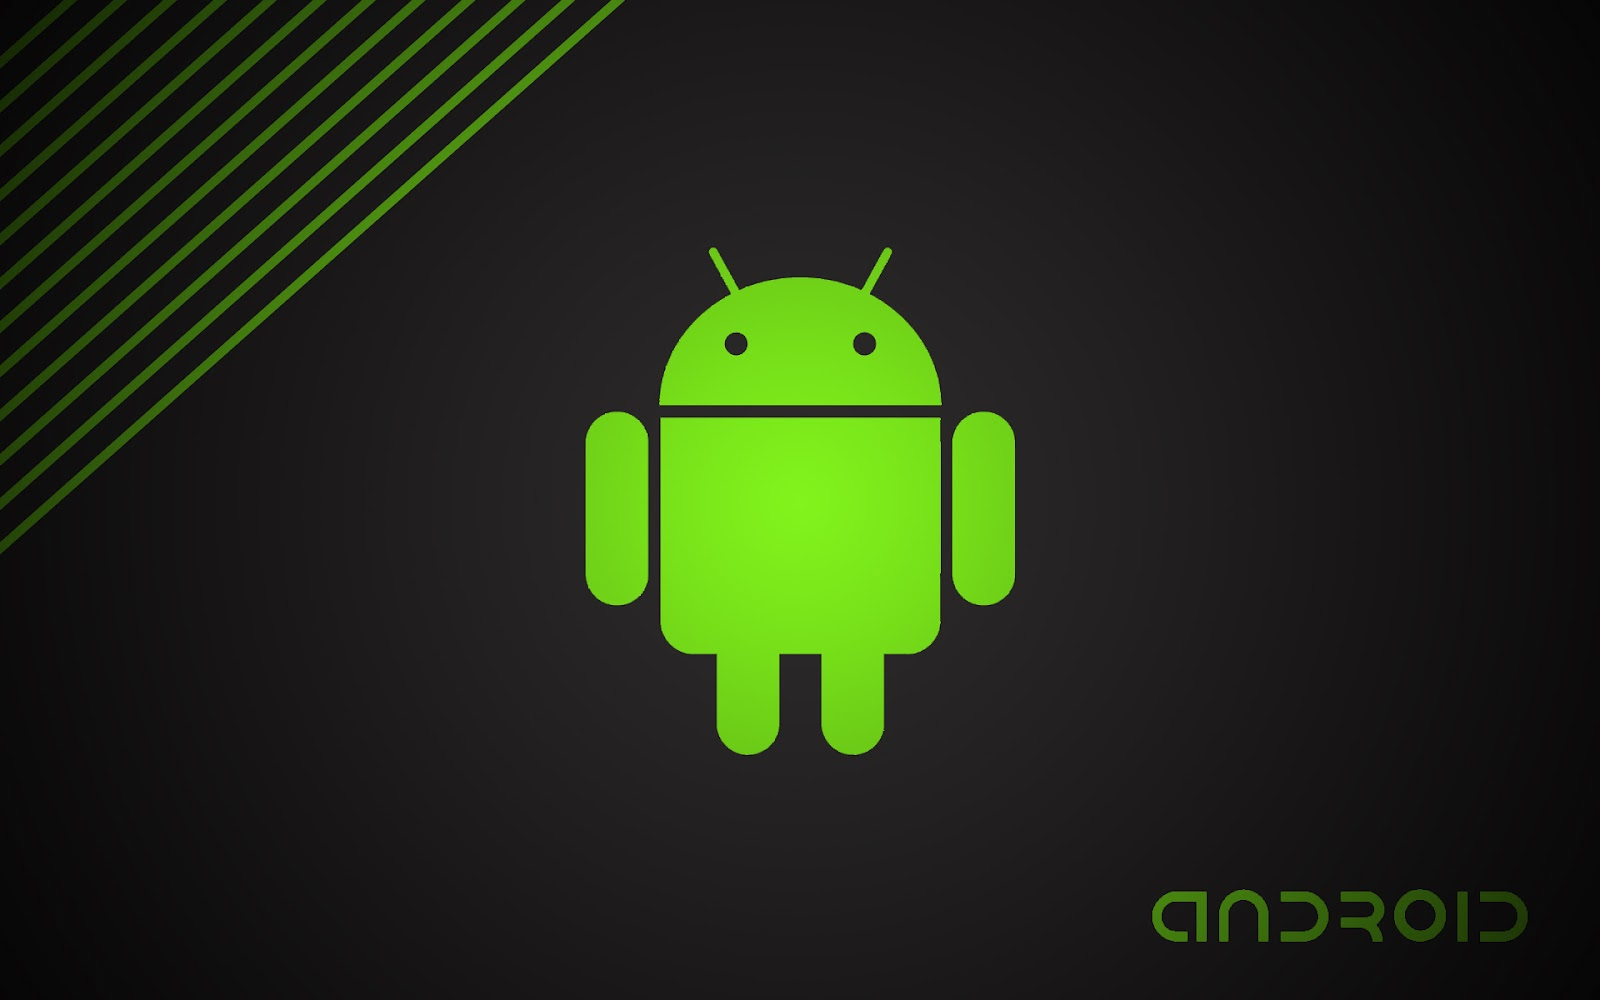 wallpapers hd android